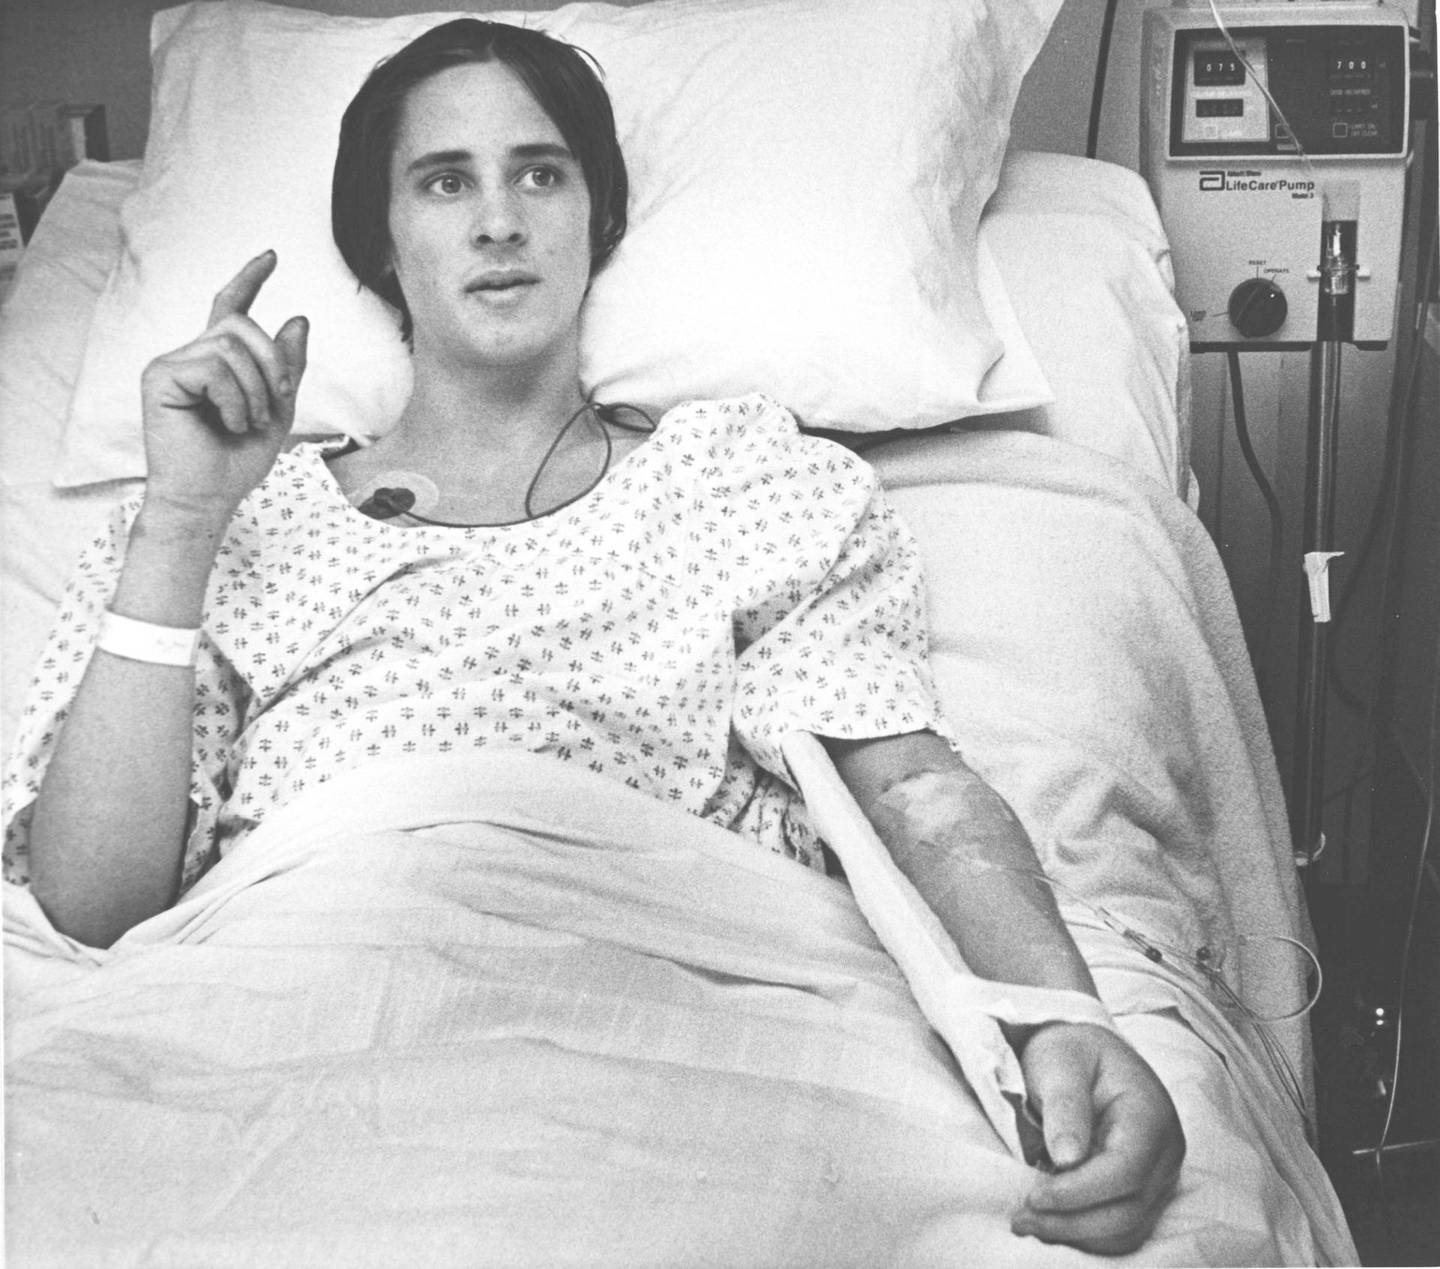 This is Jan. 1982 photo of lost ice climber Hugh Herr in the Littleton, N.H., hospital after spending four days lost on Mount Washington. Twenty years later Herr recalls his ordeal and the death of Albert Dow who died in an avalanche looking for him and his companion Jeff Batzer. (AP Photo/Jim Cole)